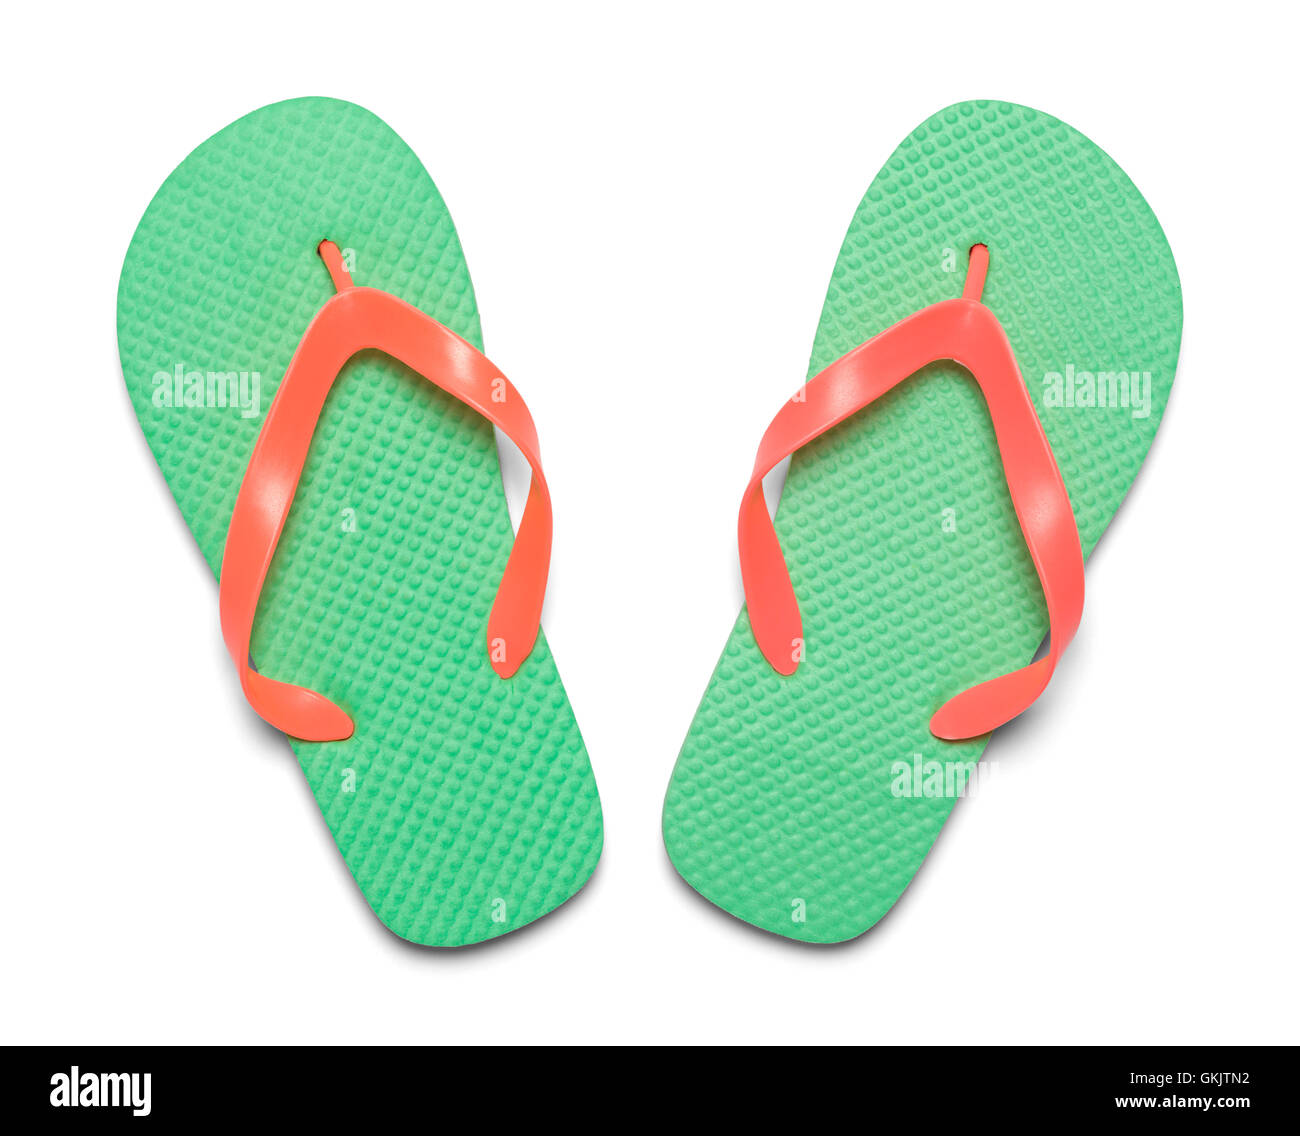 Pair of Light Green Flip Flops  Top View Isolated on White Background. - Stock Image